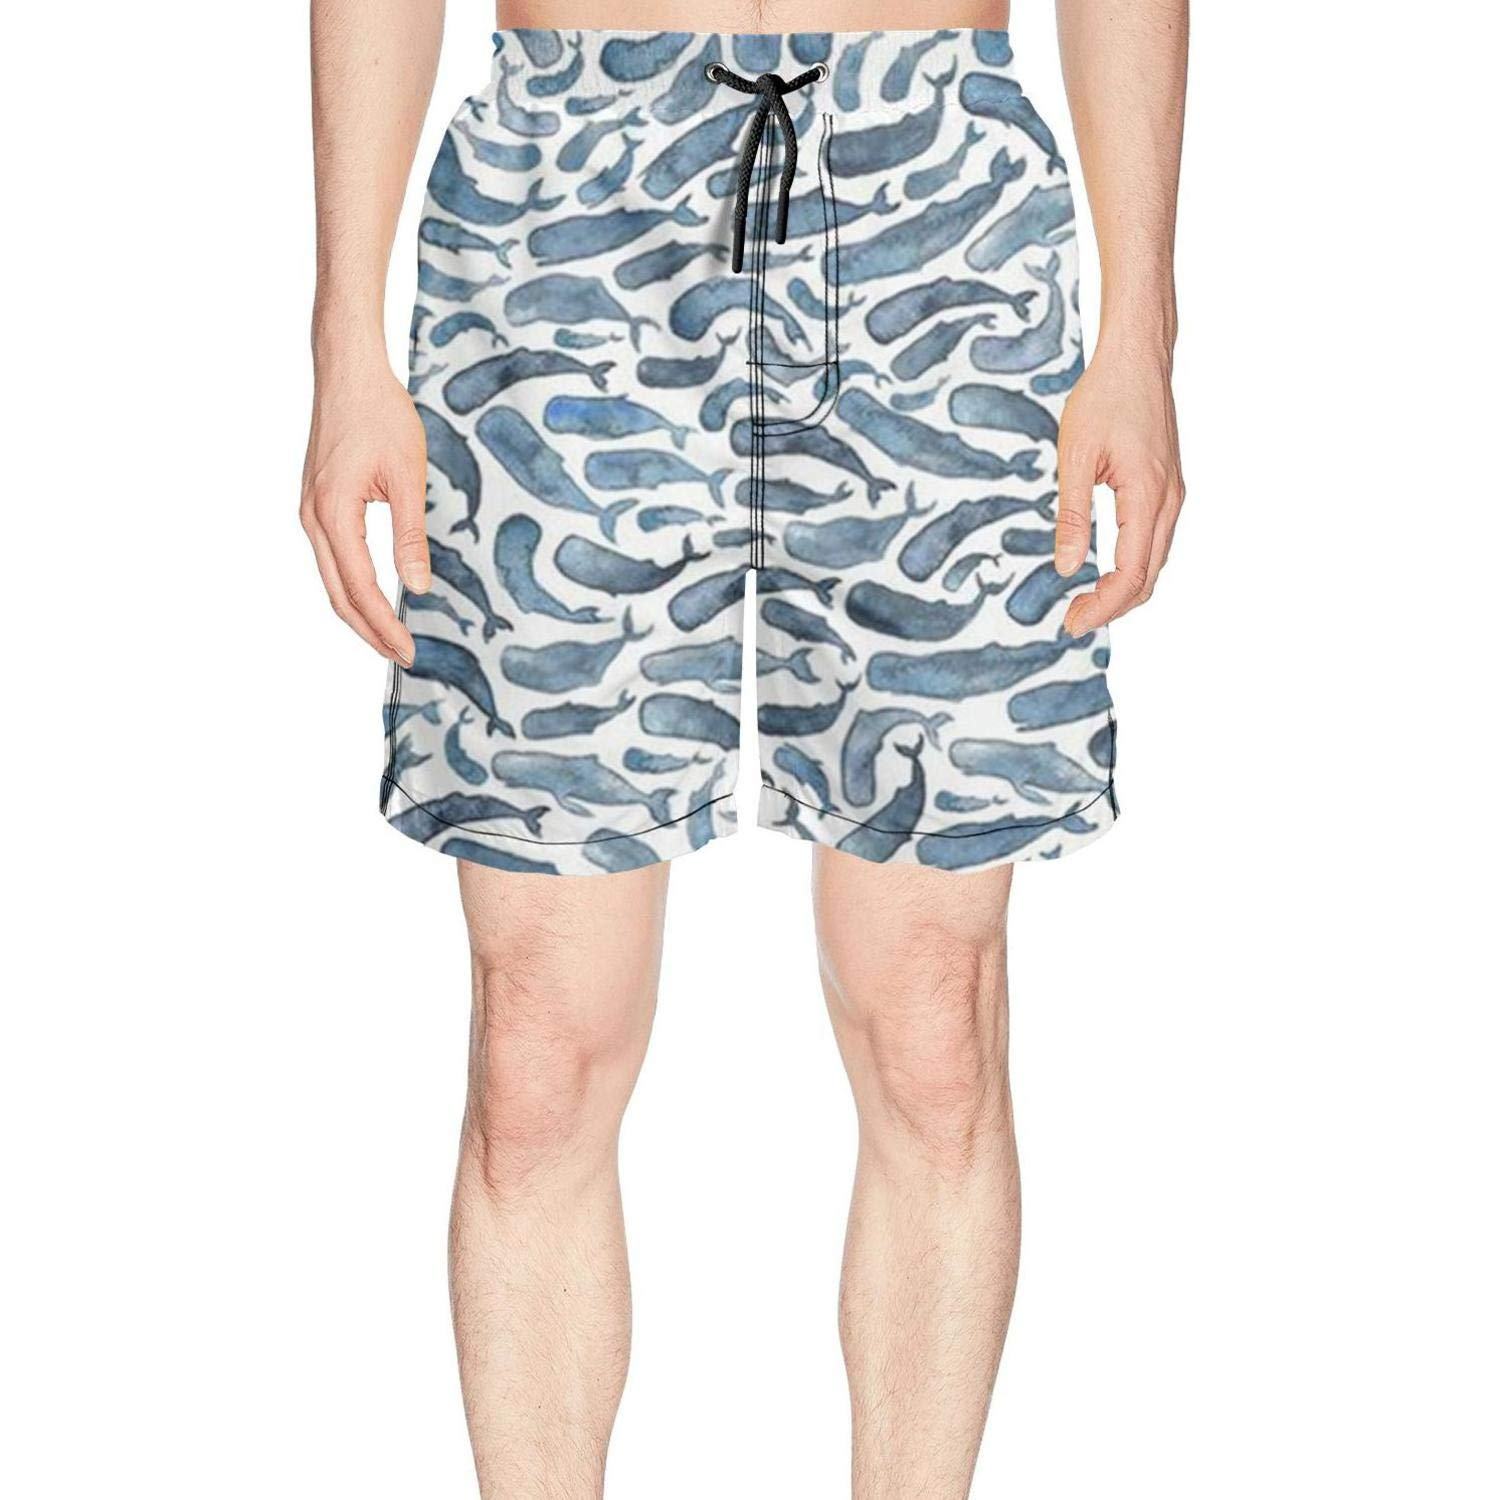 XULANG Mens for The Love of Whale Swim Trunks Jogging Skate Knee Length Boardshorts by XULANG (Image #1)